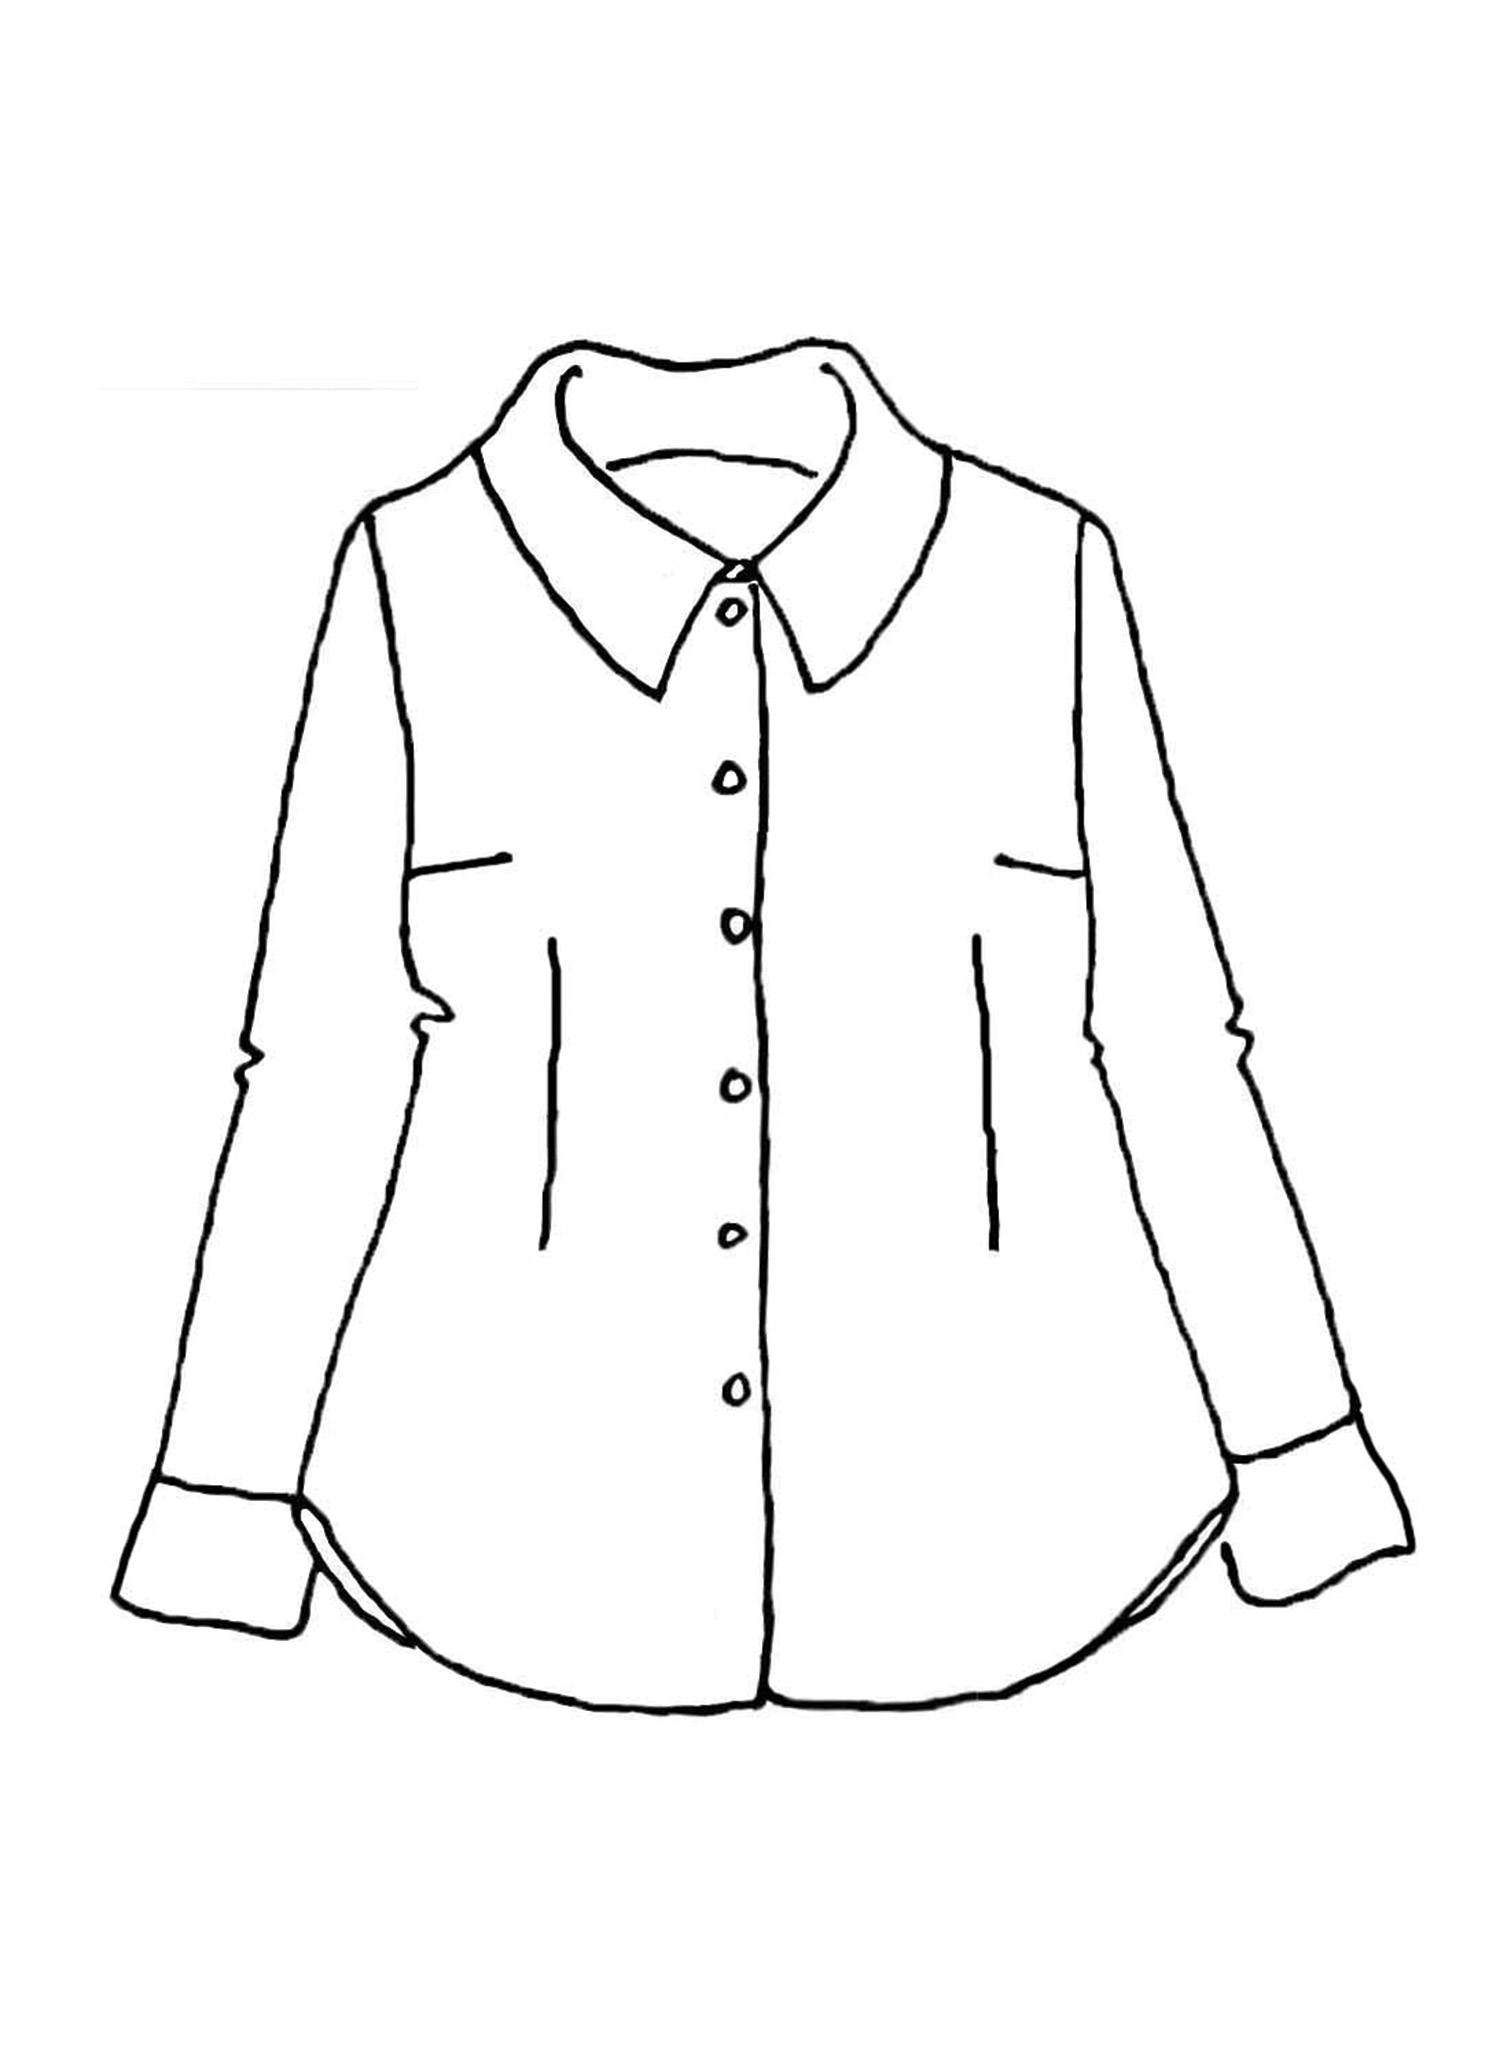 Exploring Blouse sketch image